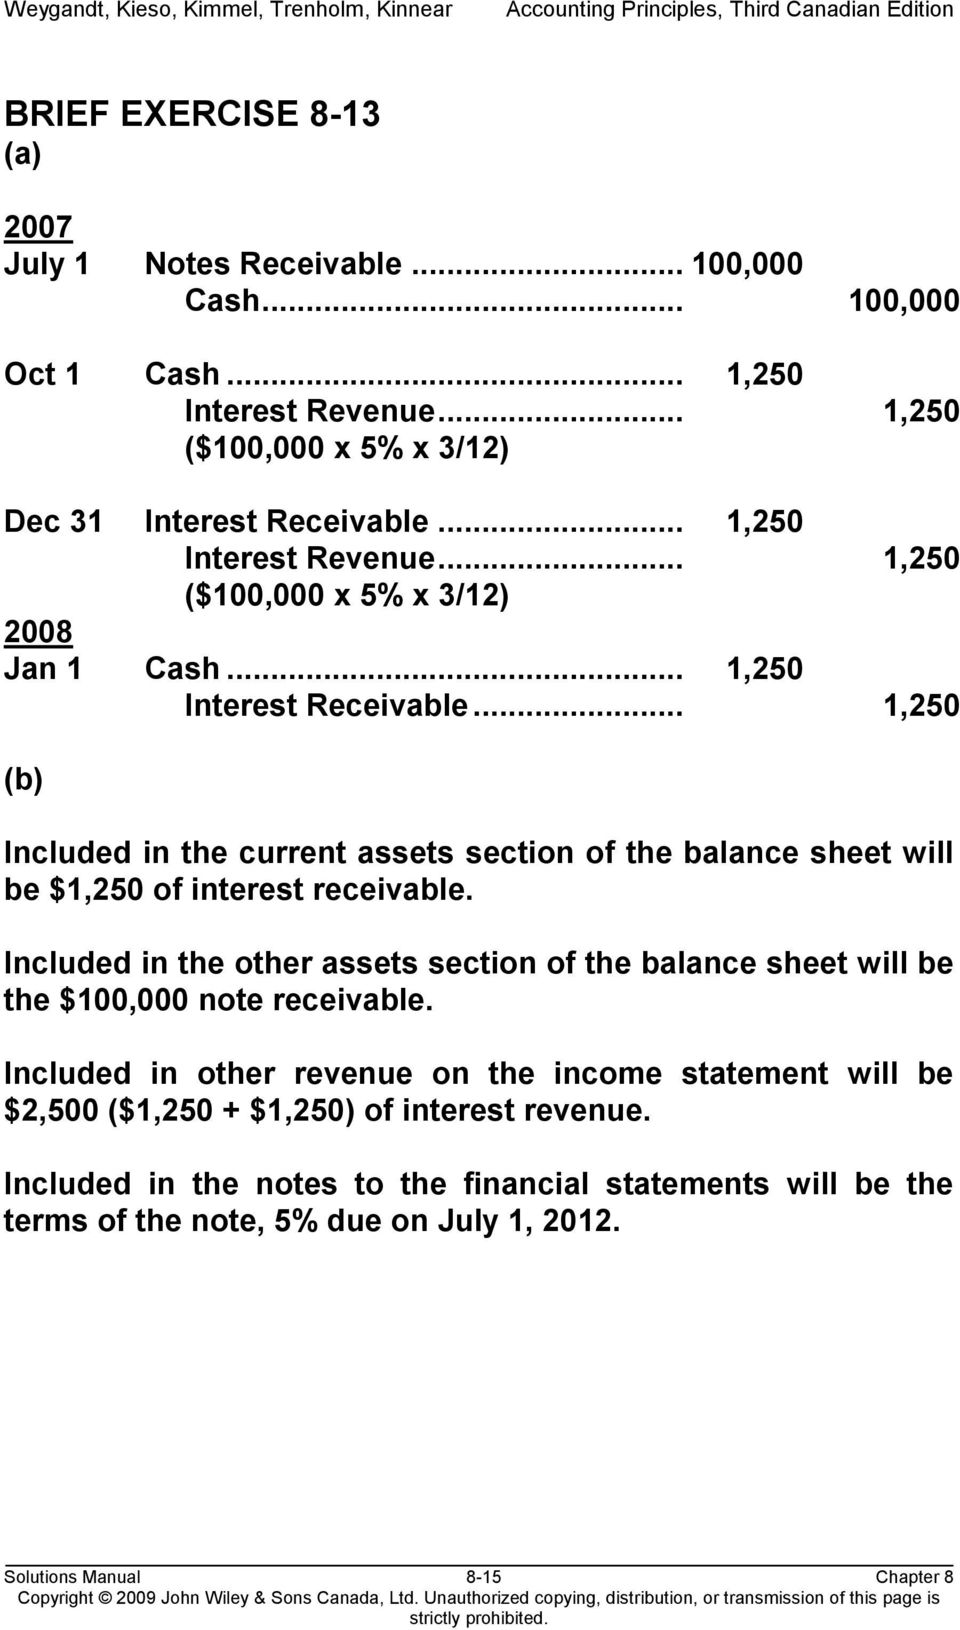 .. 1,250 (b) Included in the current assets section of the balance sheet will be $1,250 of interest receivable.